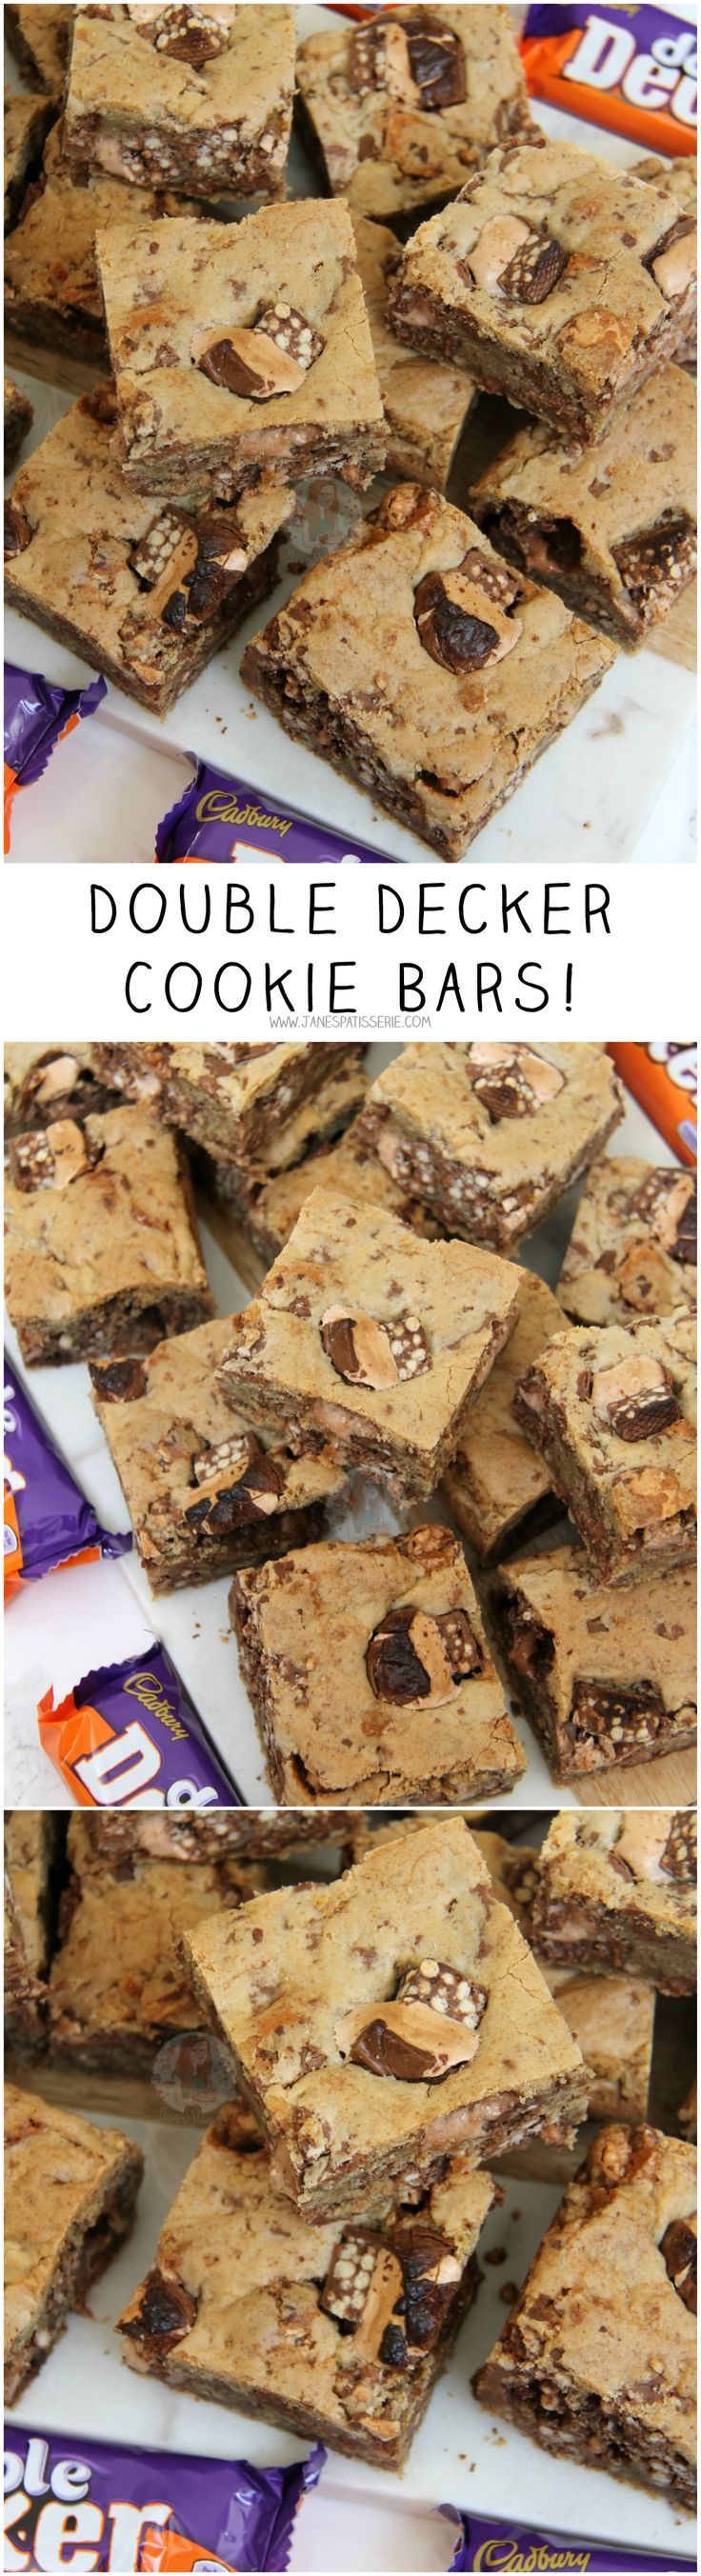 Double Decker Cookie Bars! ❤️ Gooey, chewy, soft and delicious Double Decker Cookie Bars with even more Chocolate Chips.